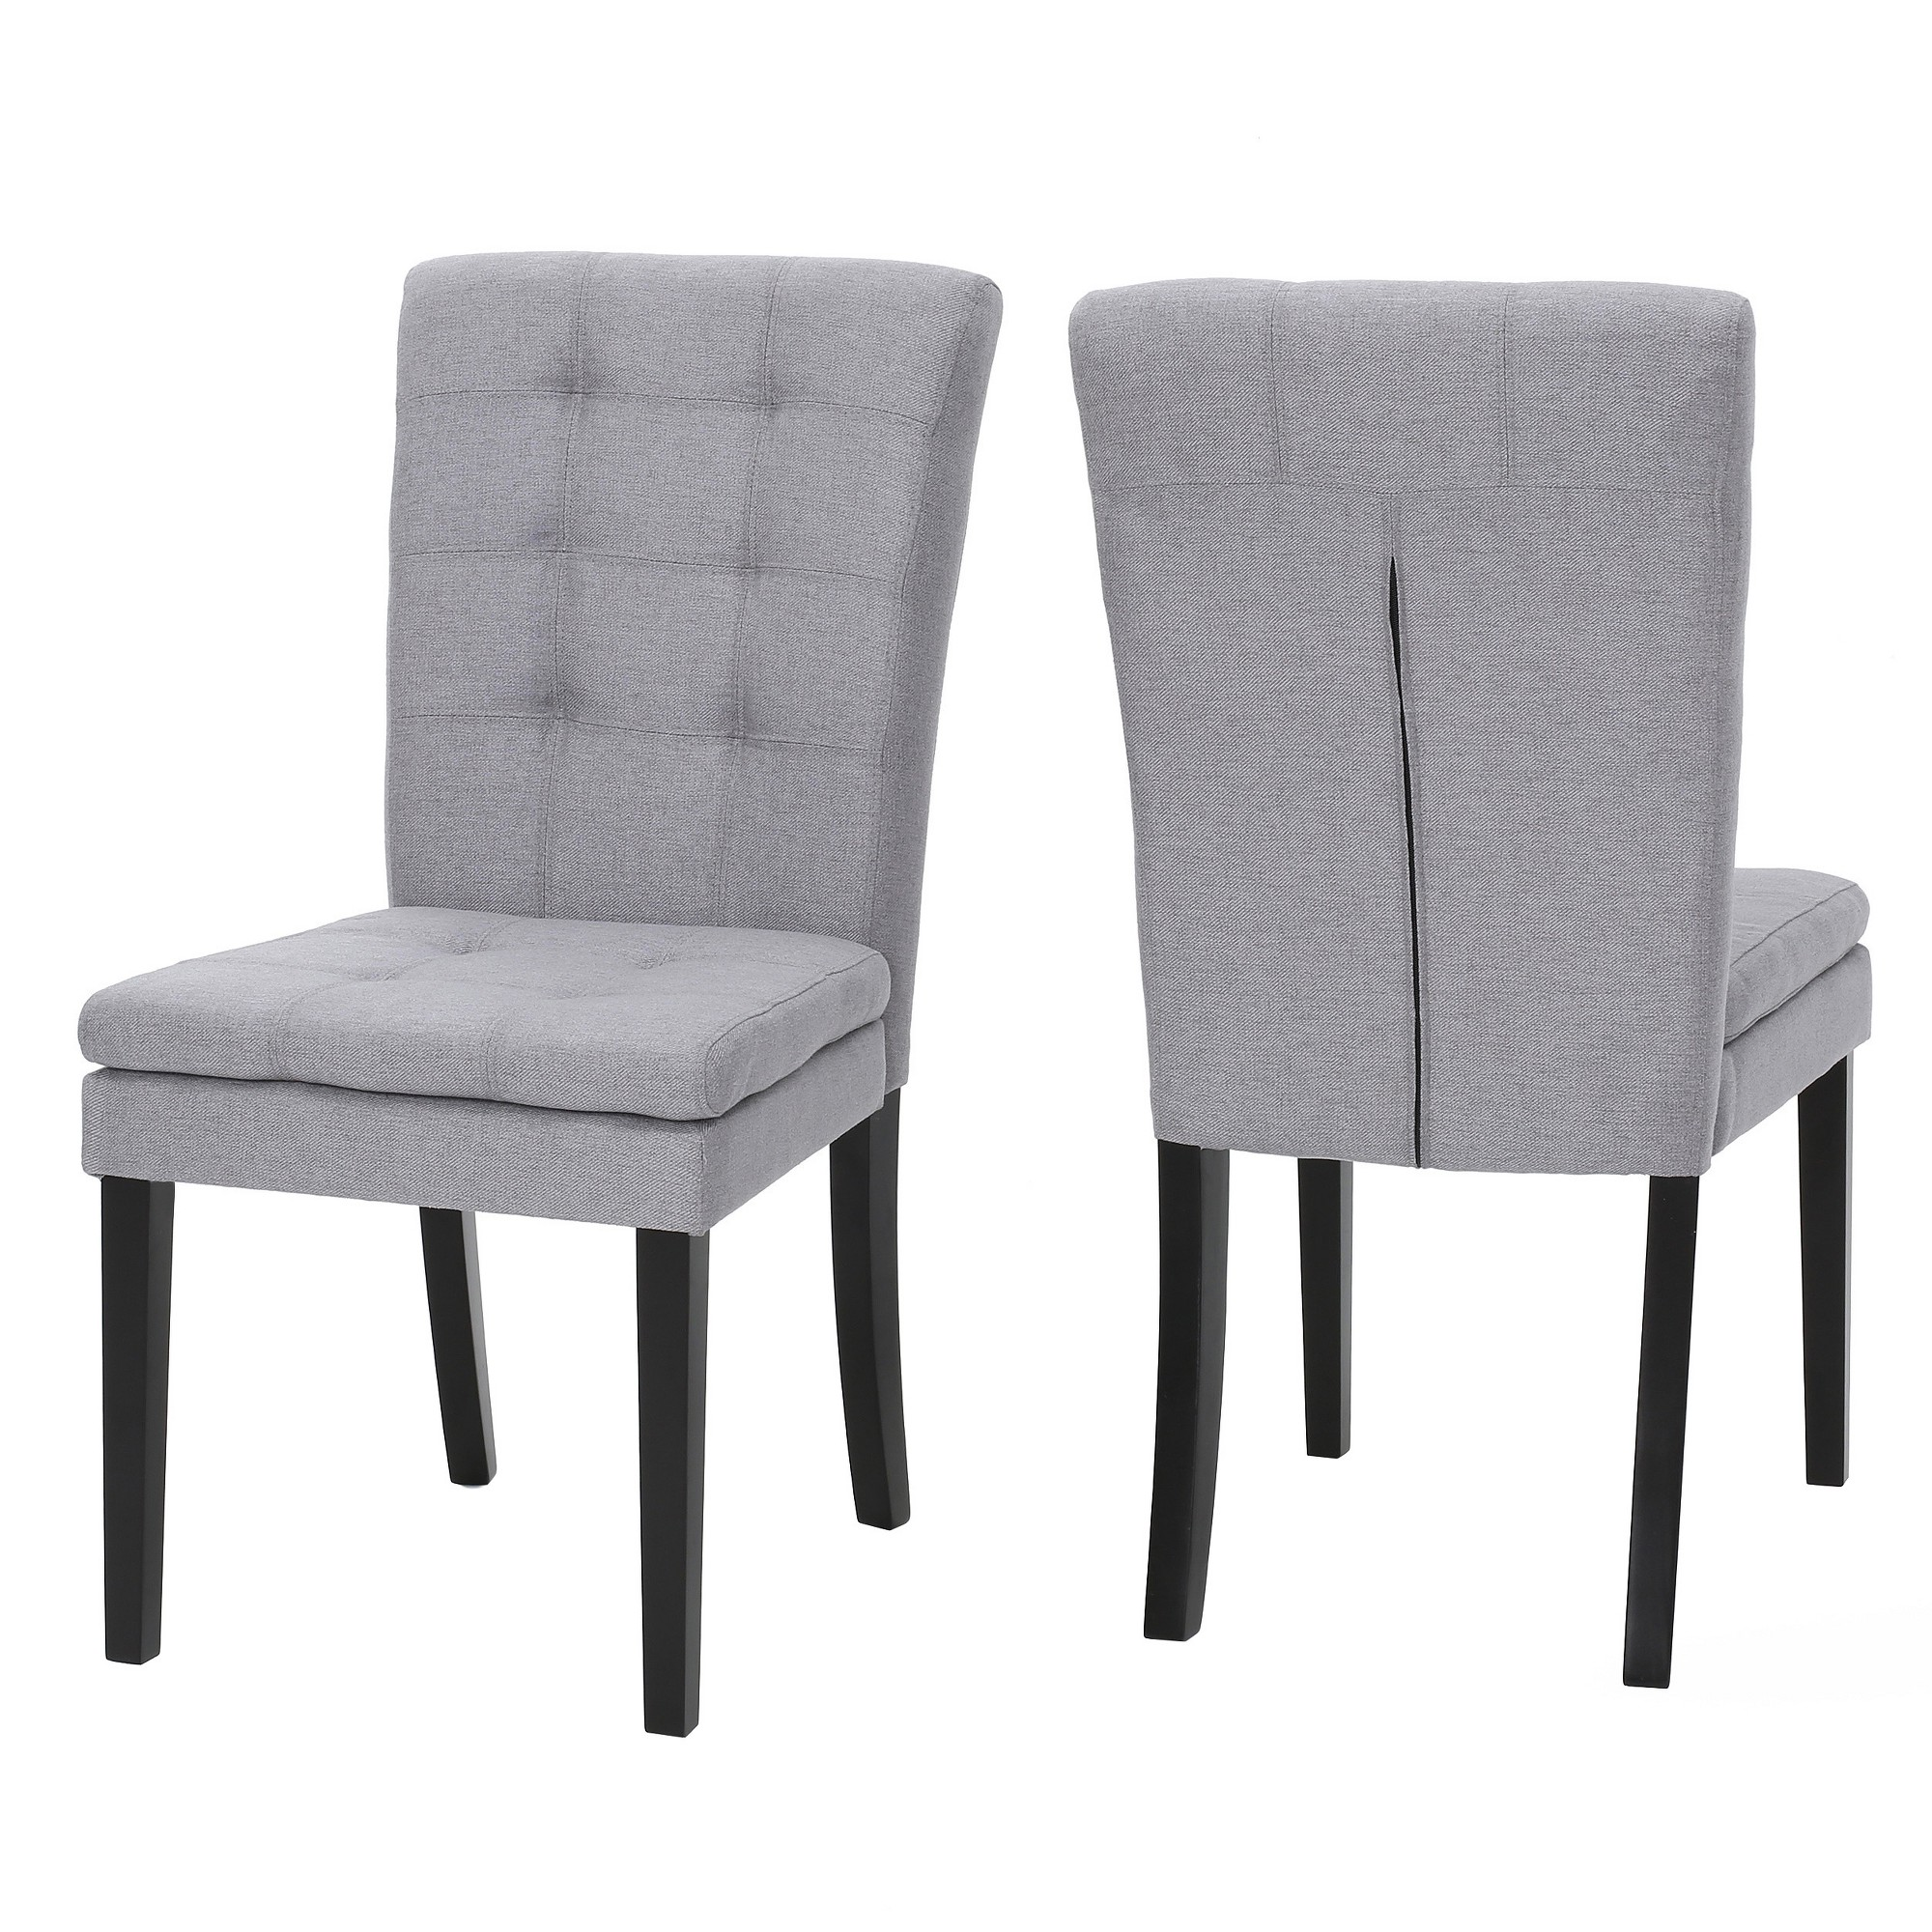 Rustikaler wohnzimmerspiegel cortez dining chair set of   light gray  christopher knight